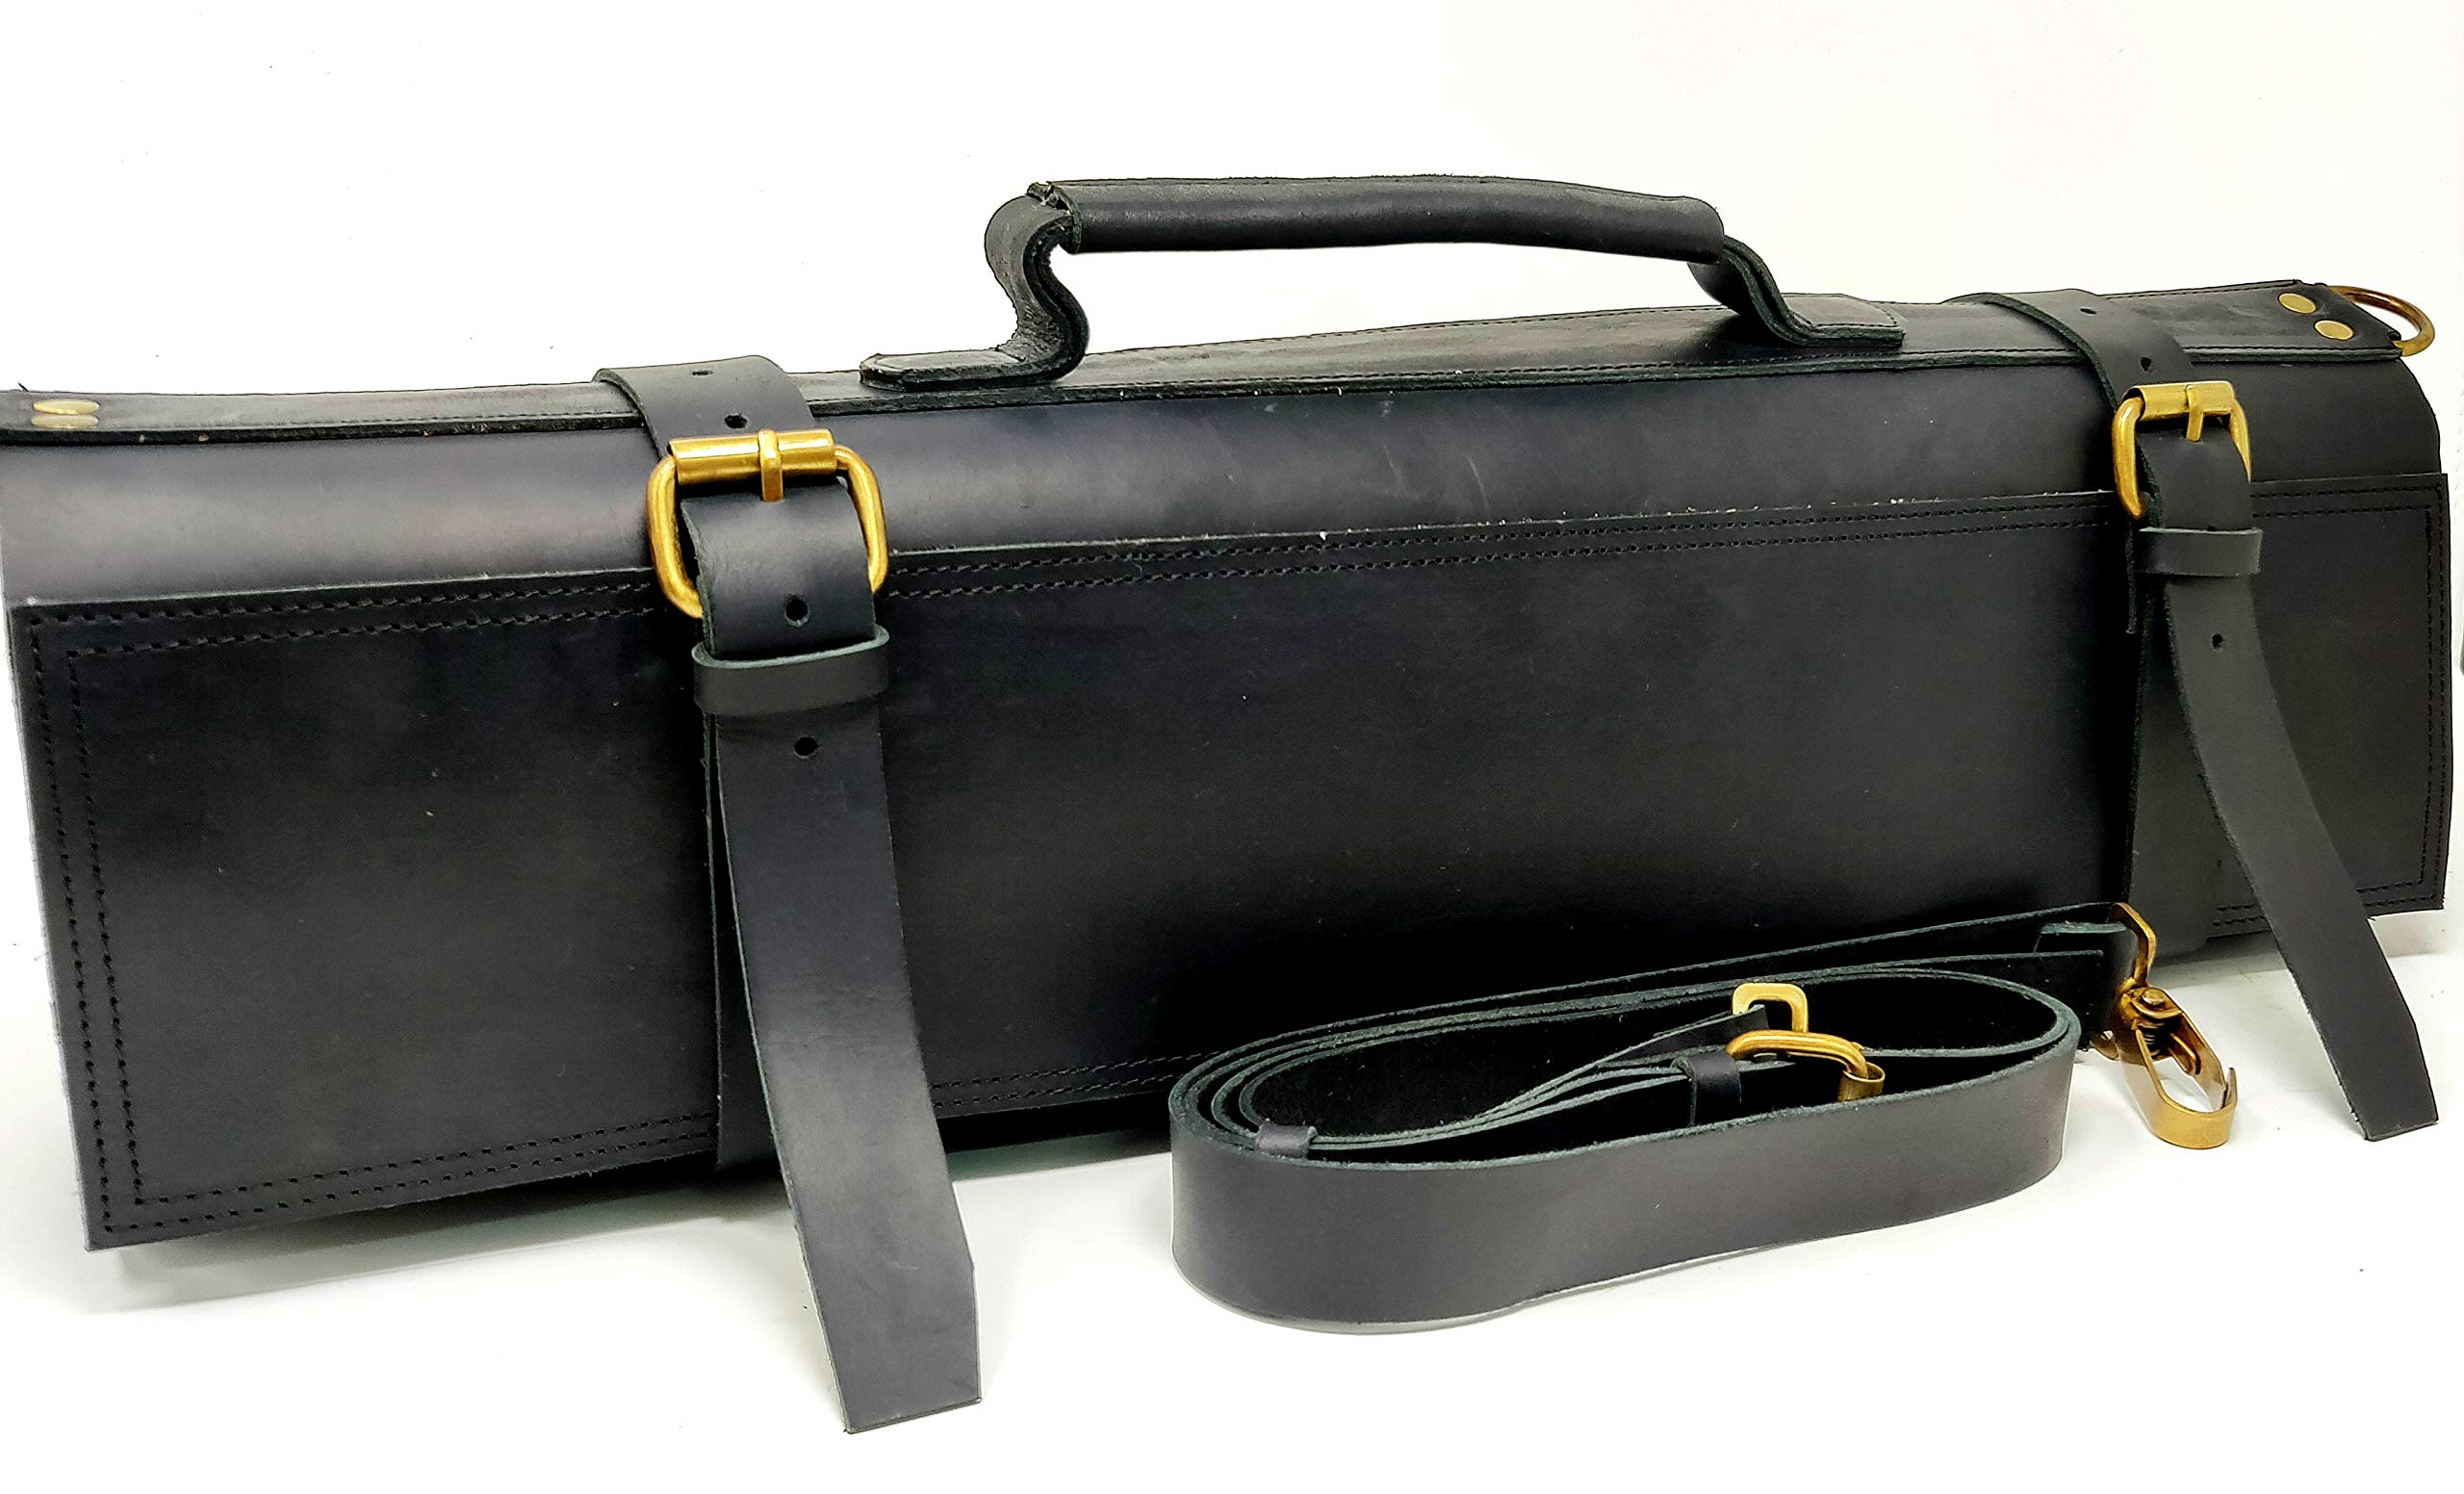 M'Cuero Leather Black chefs roll bag knife roll leather bag shoulder Bags